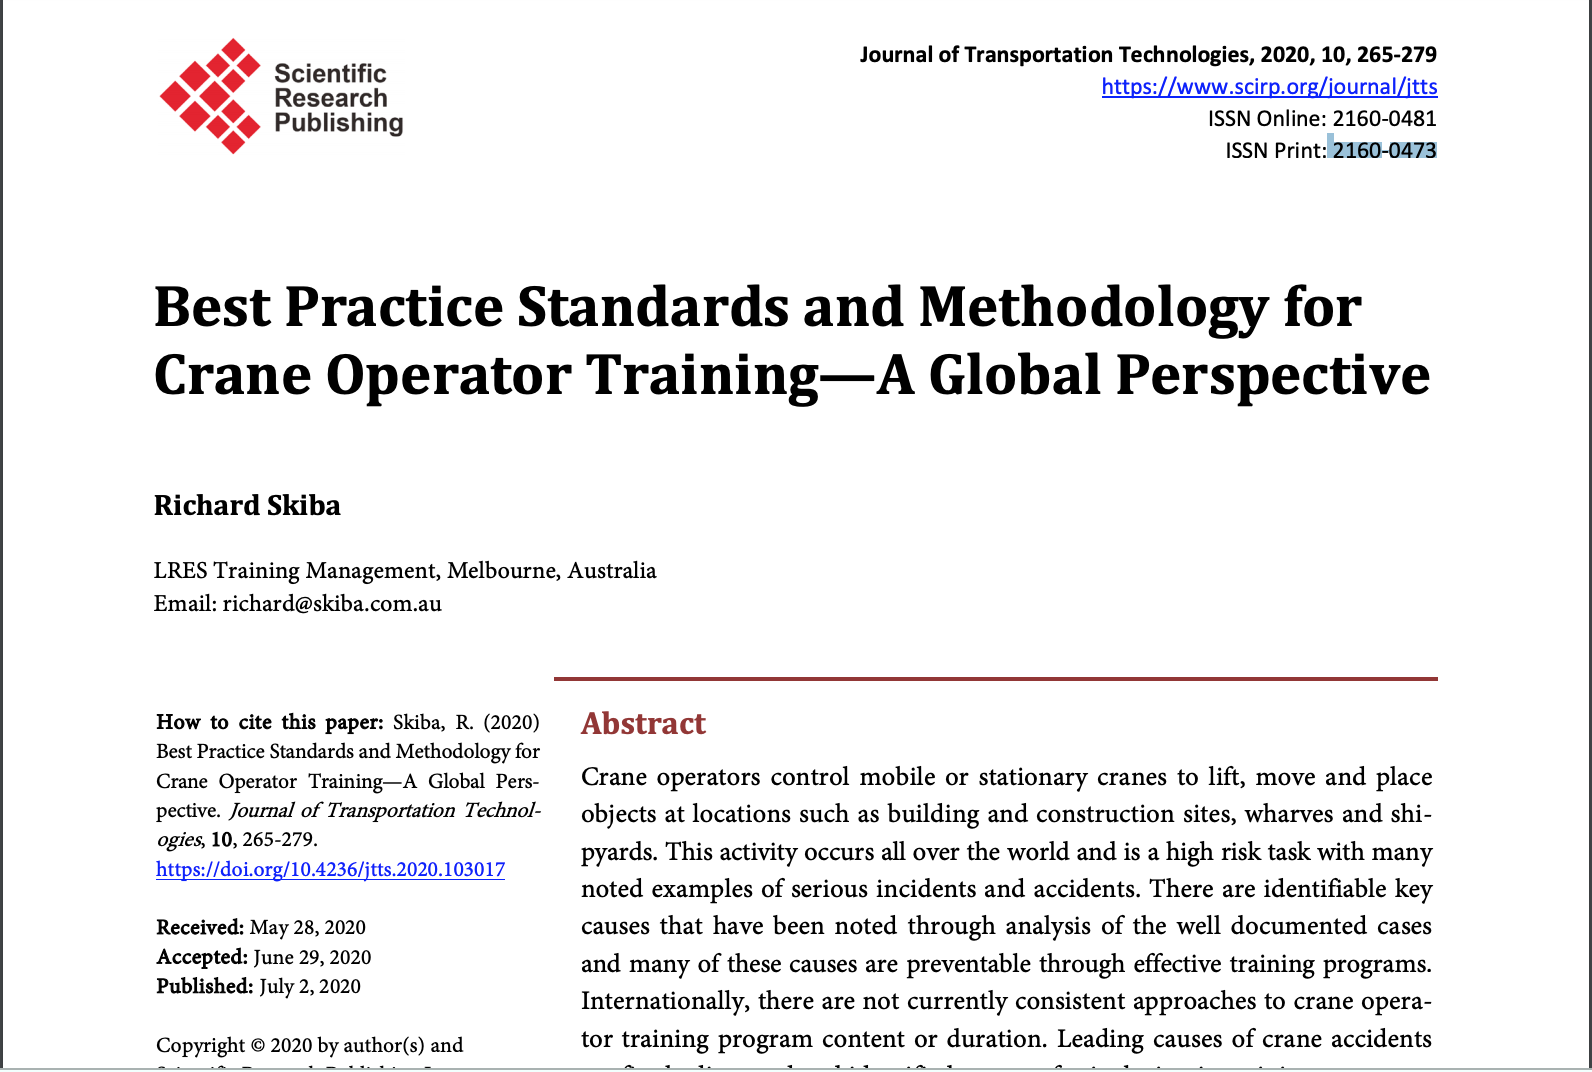 Best Practice Standards and Methodology for Crane Operator Training—A Global Perspective